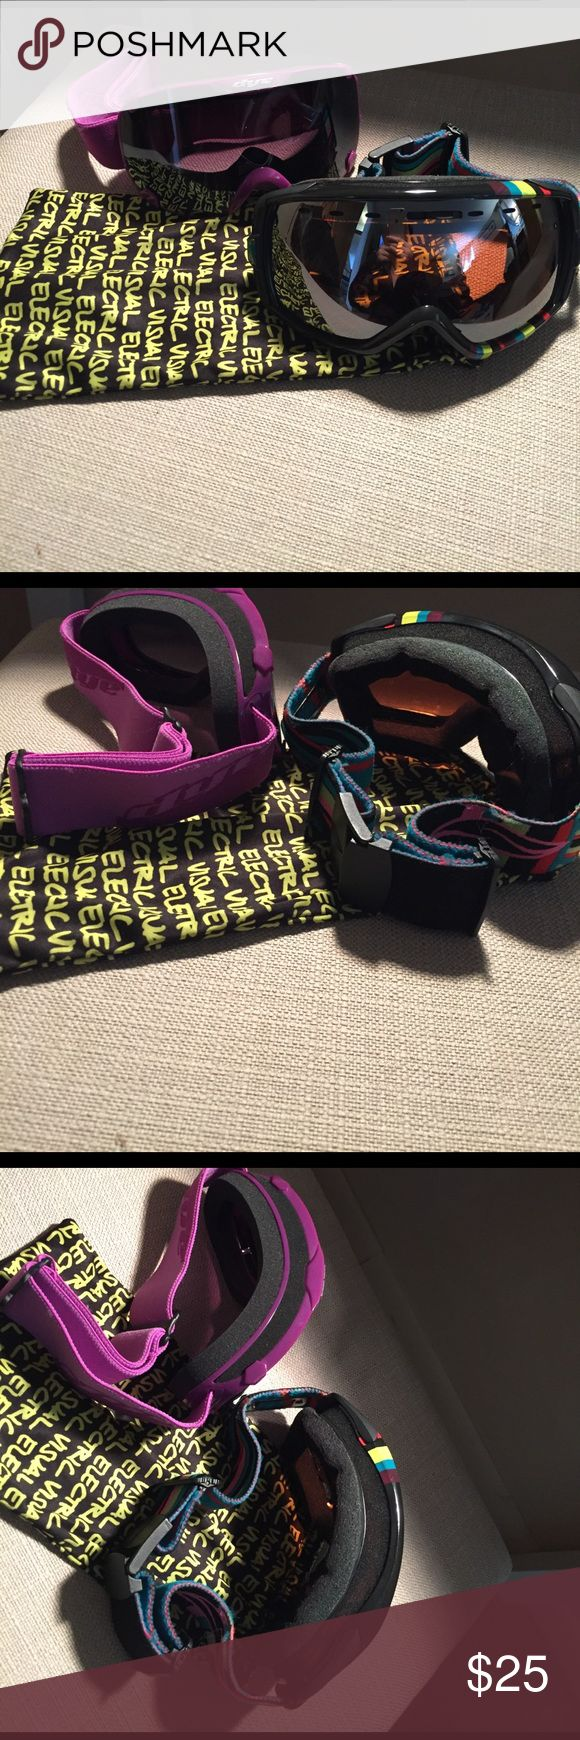 Two pairs women's skiing goggles The dye goggles are nwot and the smith heiress goggles are used smith optics Accessories